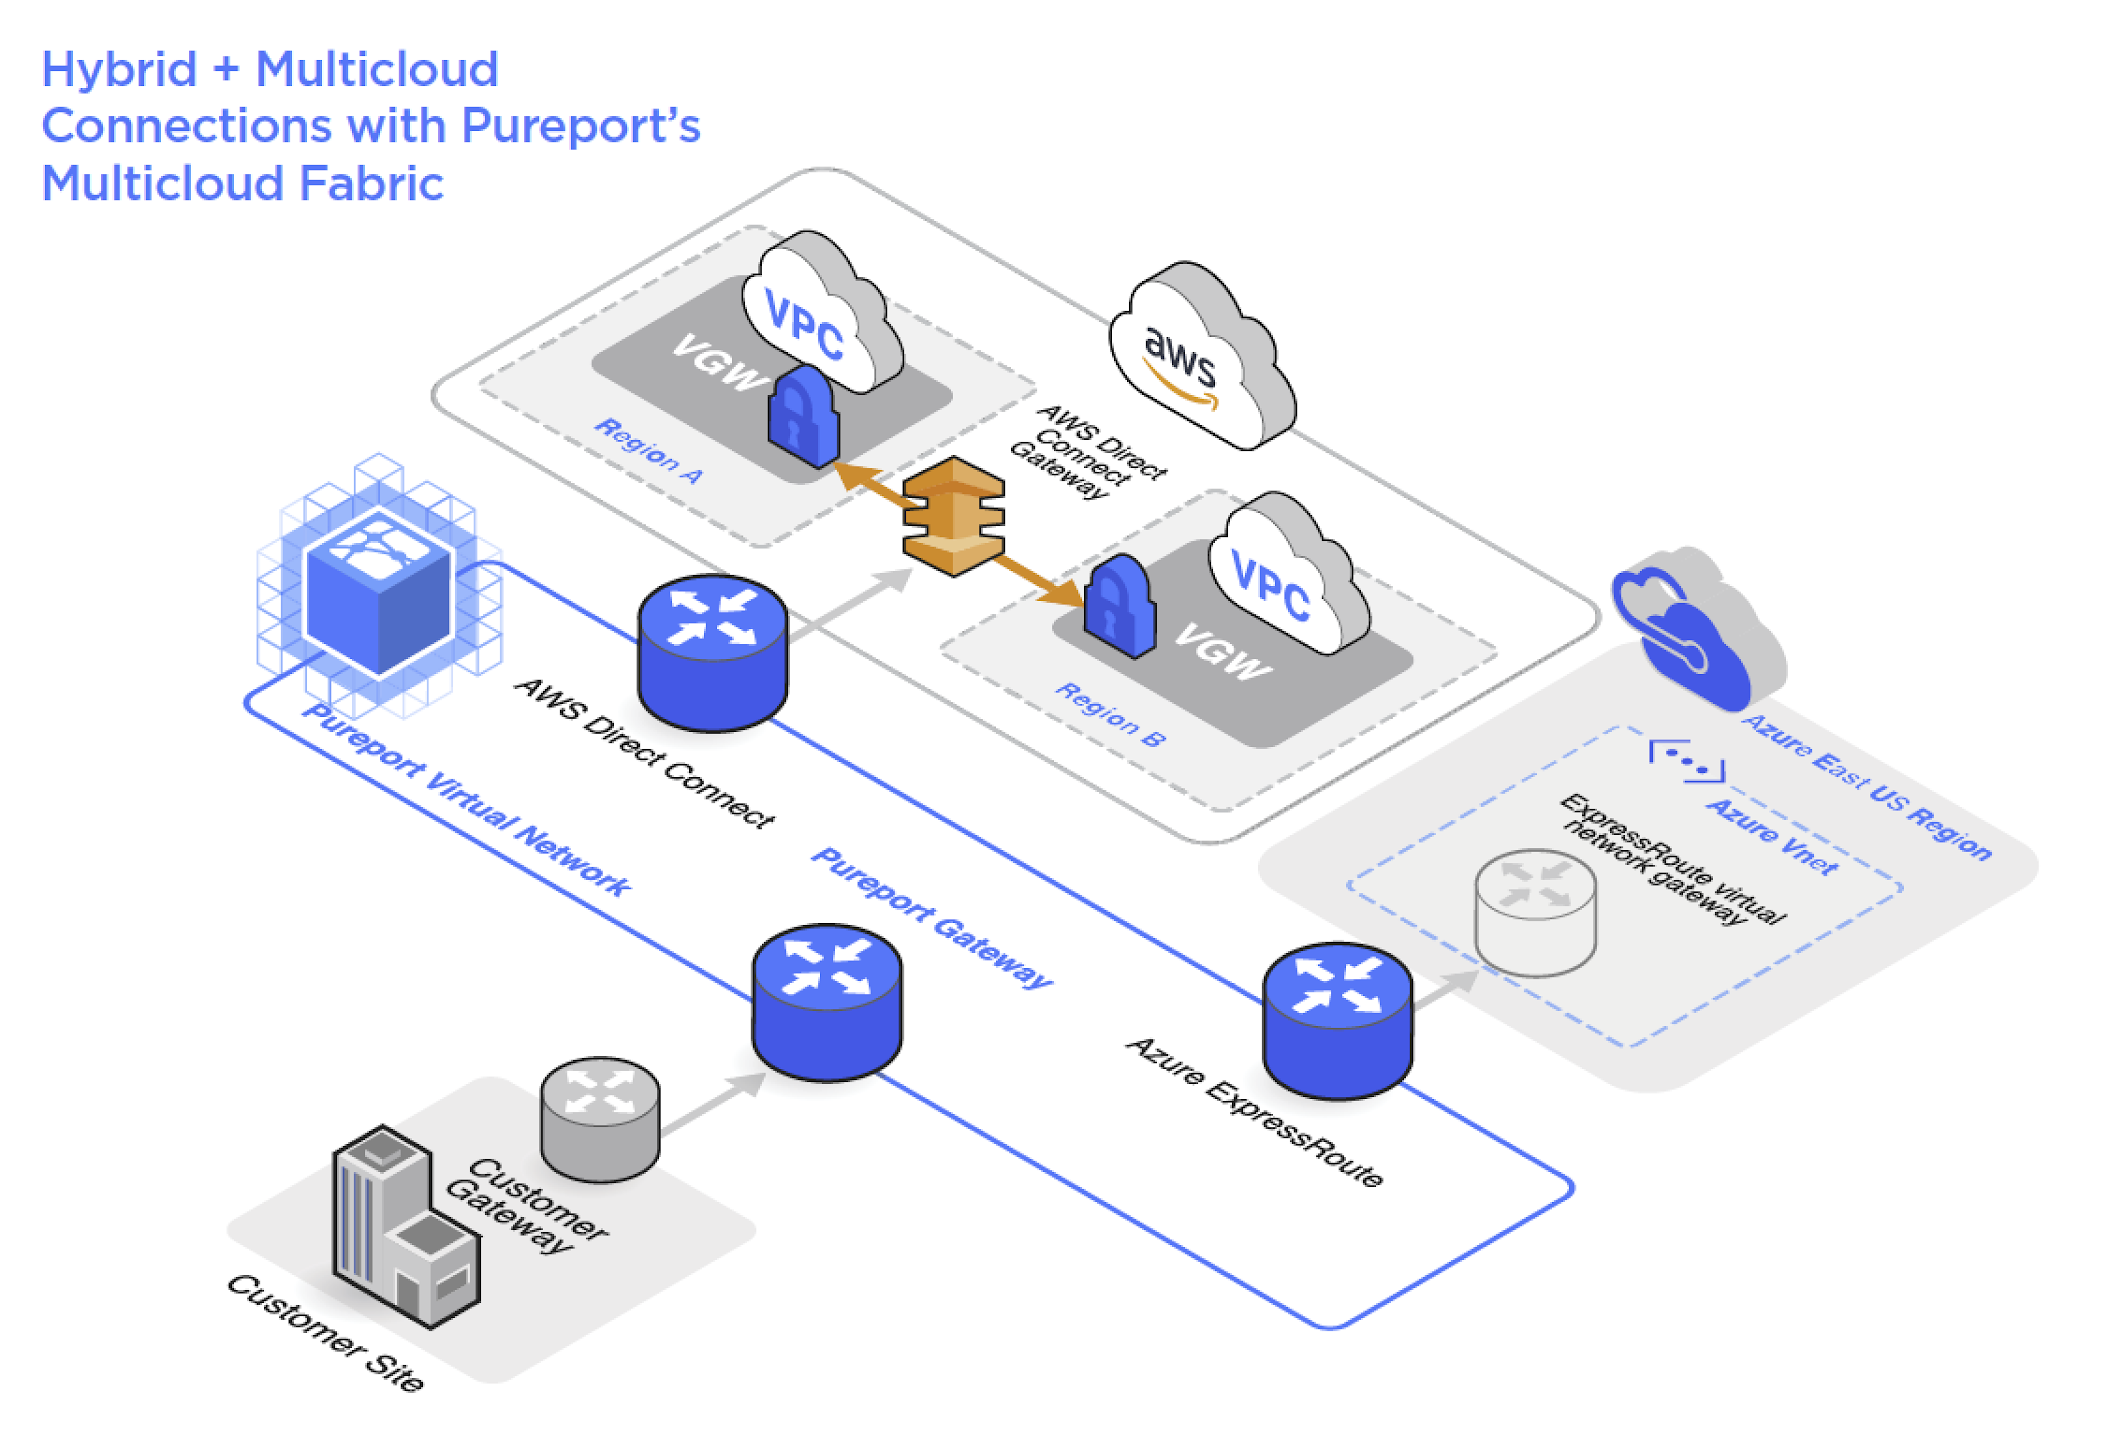 Hybrid + Multicloud Connections with Pureport's Multicloud Fabric